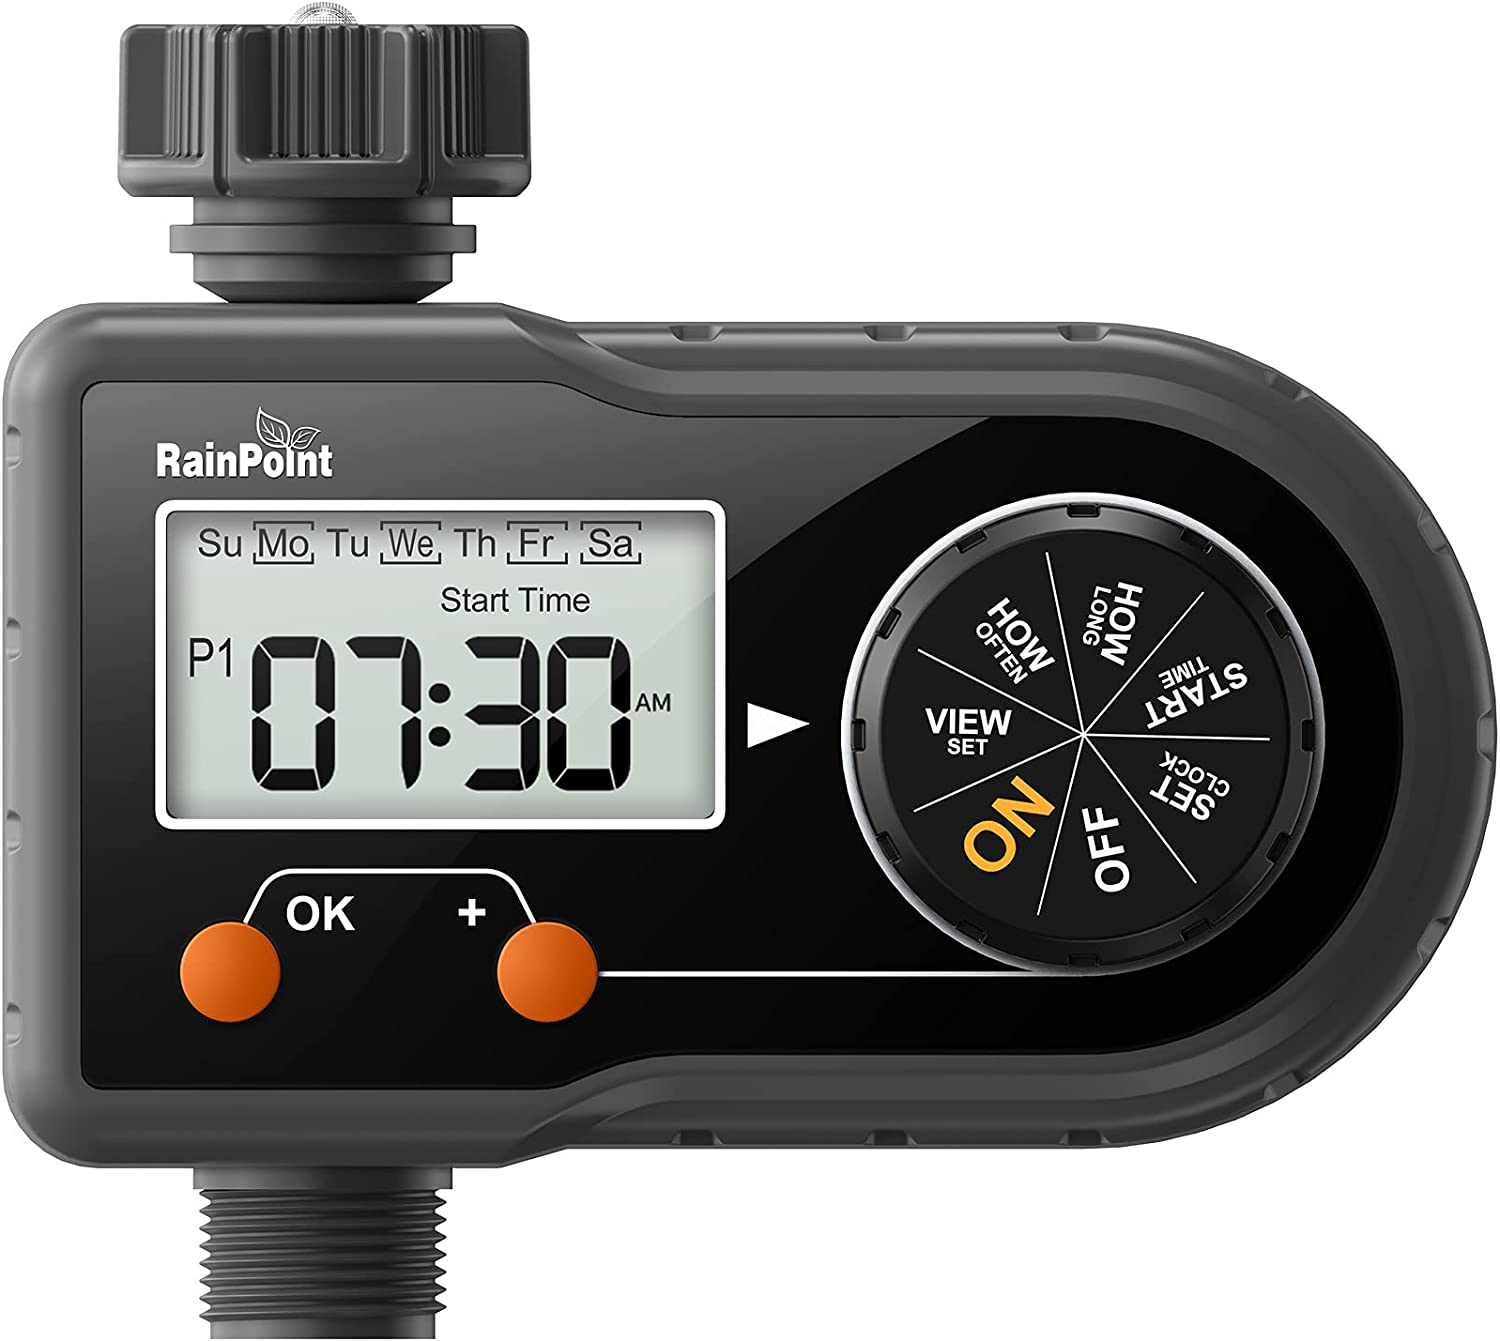 RAINPOINT Sprinkler Timer, Hose Timer Programmable Water Timer Outdoor Irrigation Timer Up to 3 Separate Programs Per Day, 2.5'' LCD Screen, Safe Shutoff Valve, for Lawn Garden Watering, Pool Filling